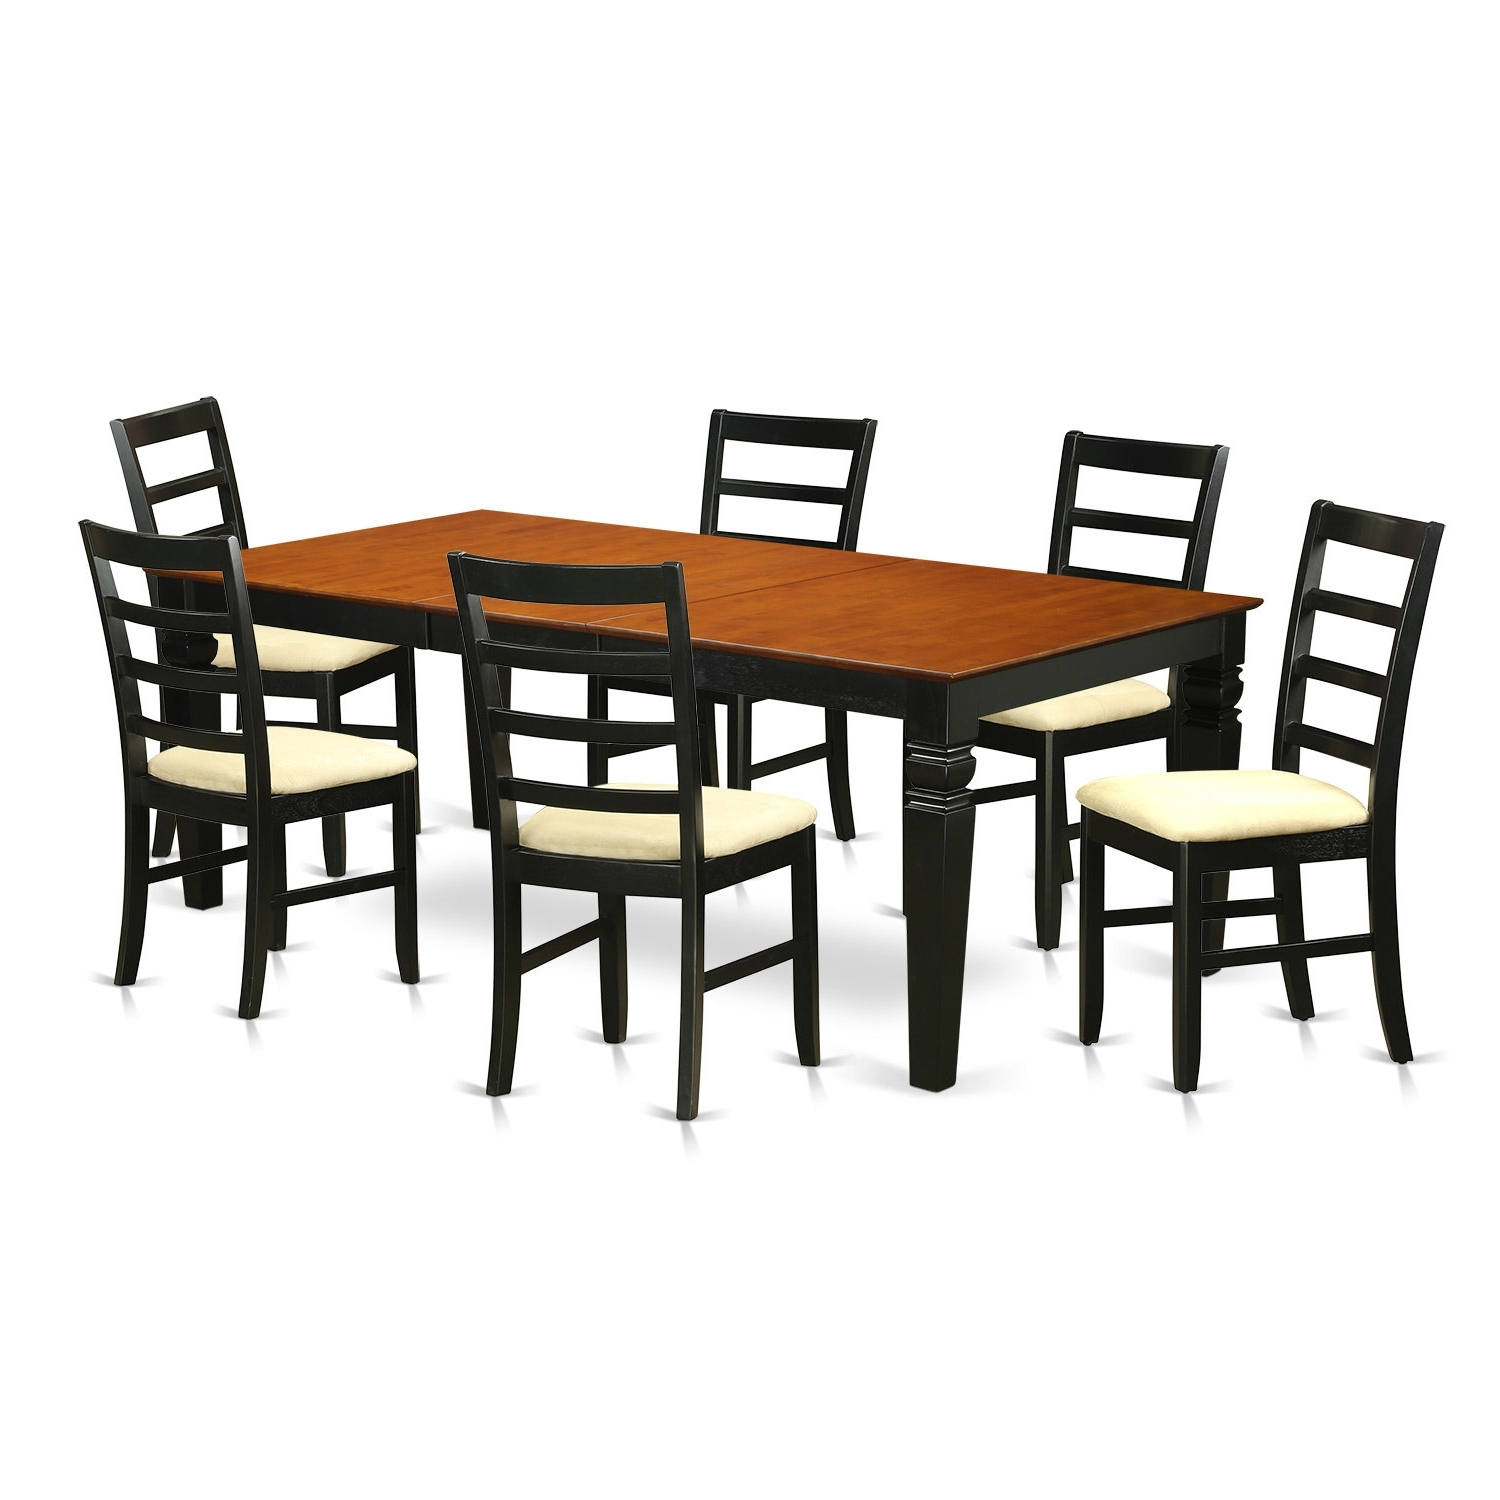 Wayfair With Regard To Most Up To Date Chandler 7 Piece Extension Dining Sets With Wood Side Chairs (View 25 of 25)